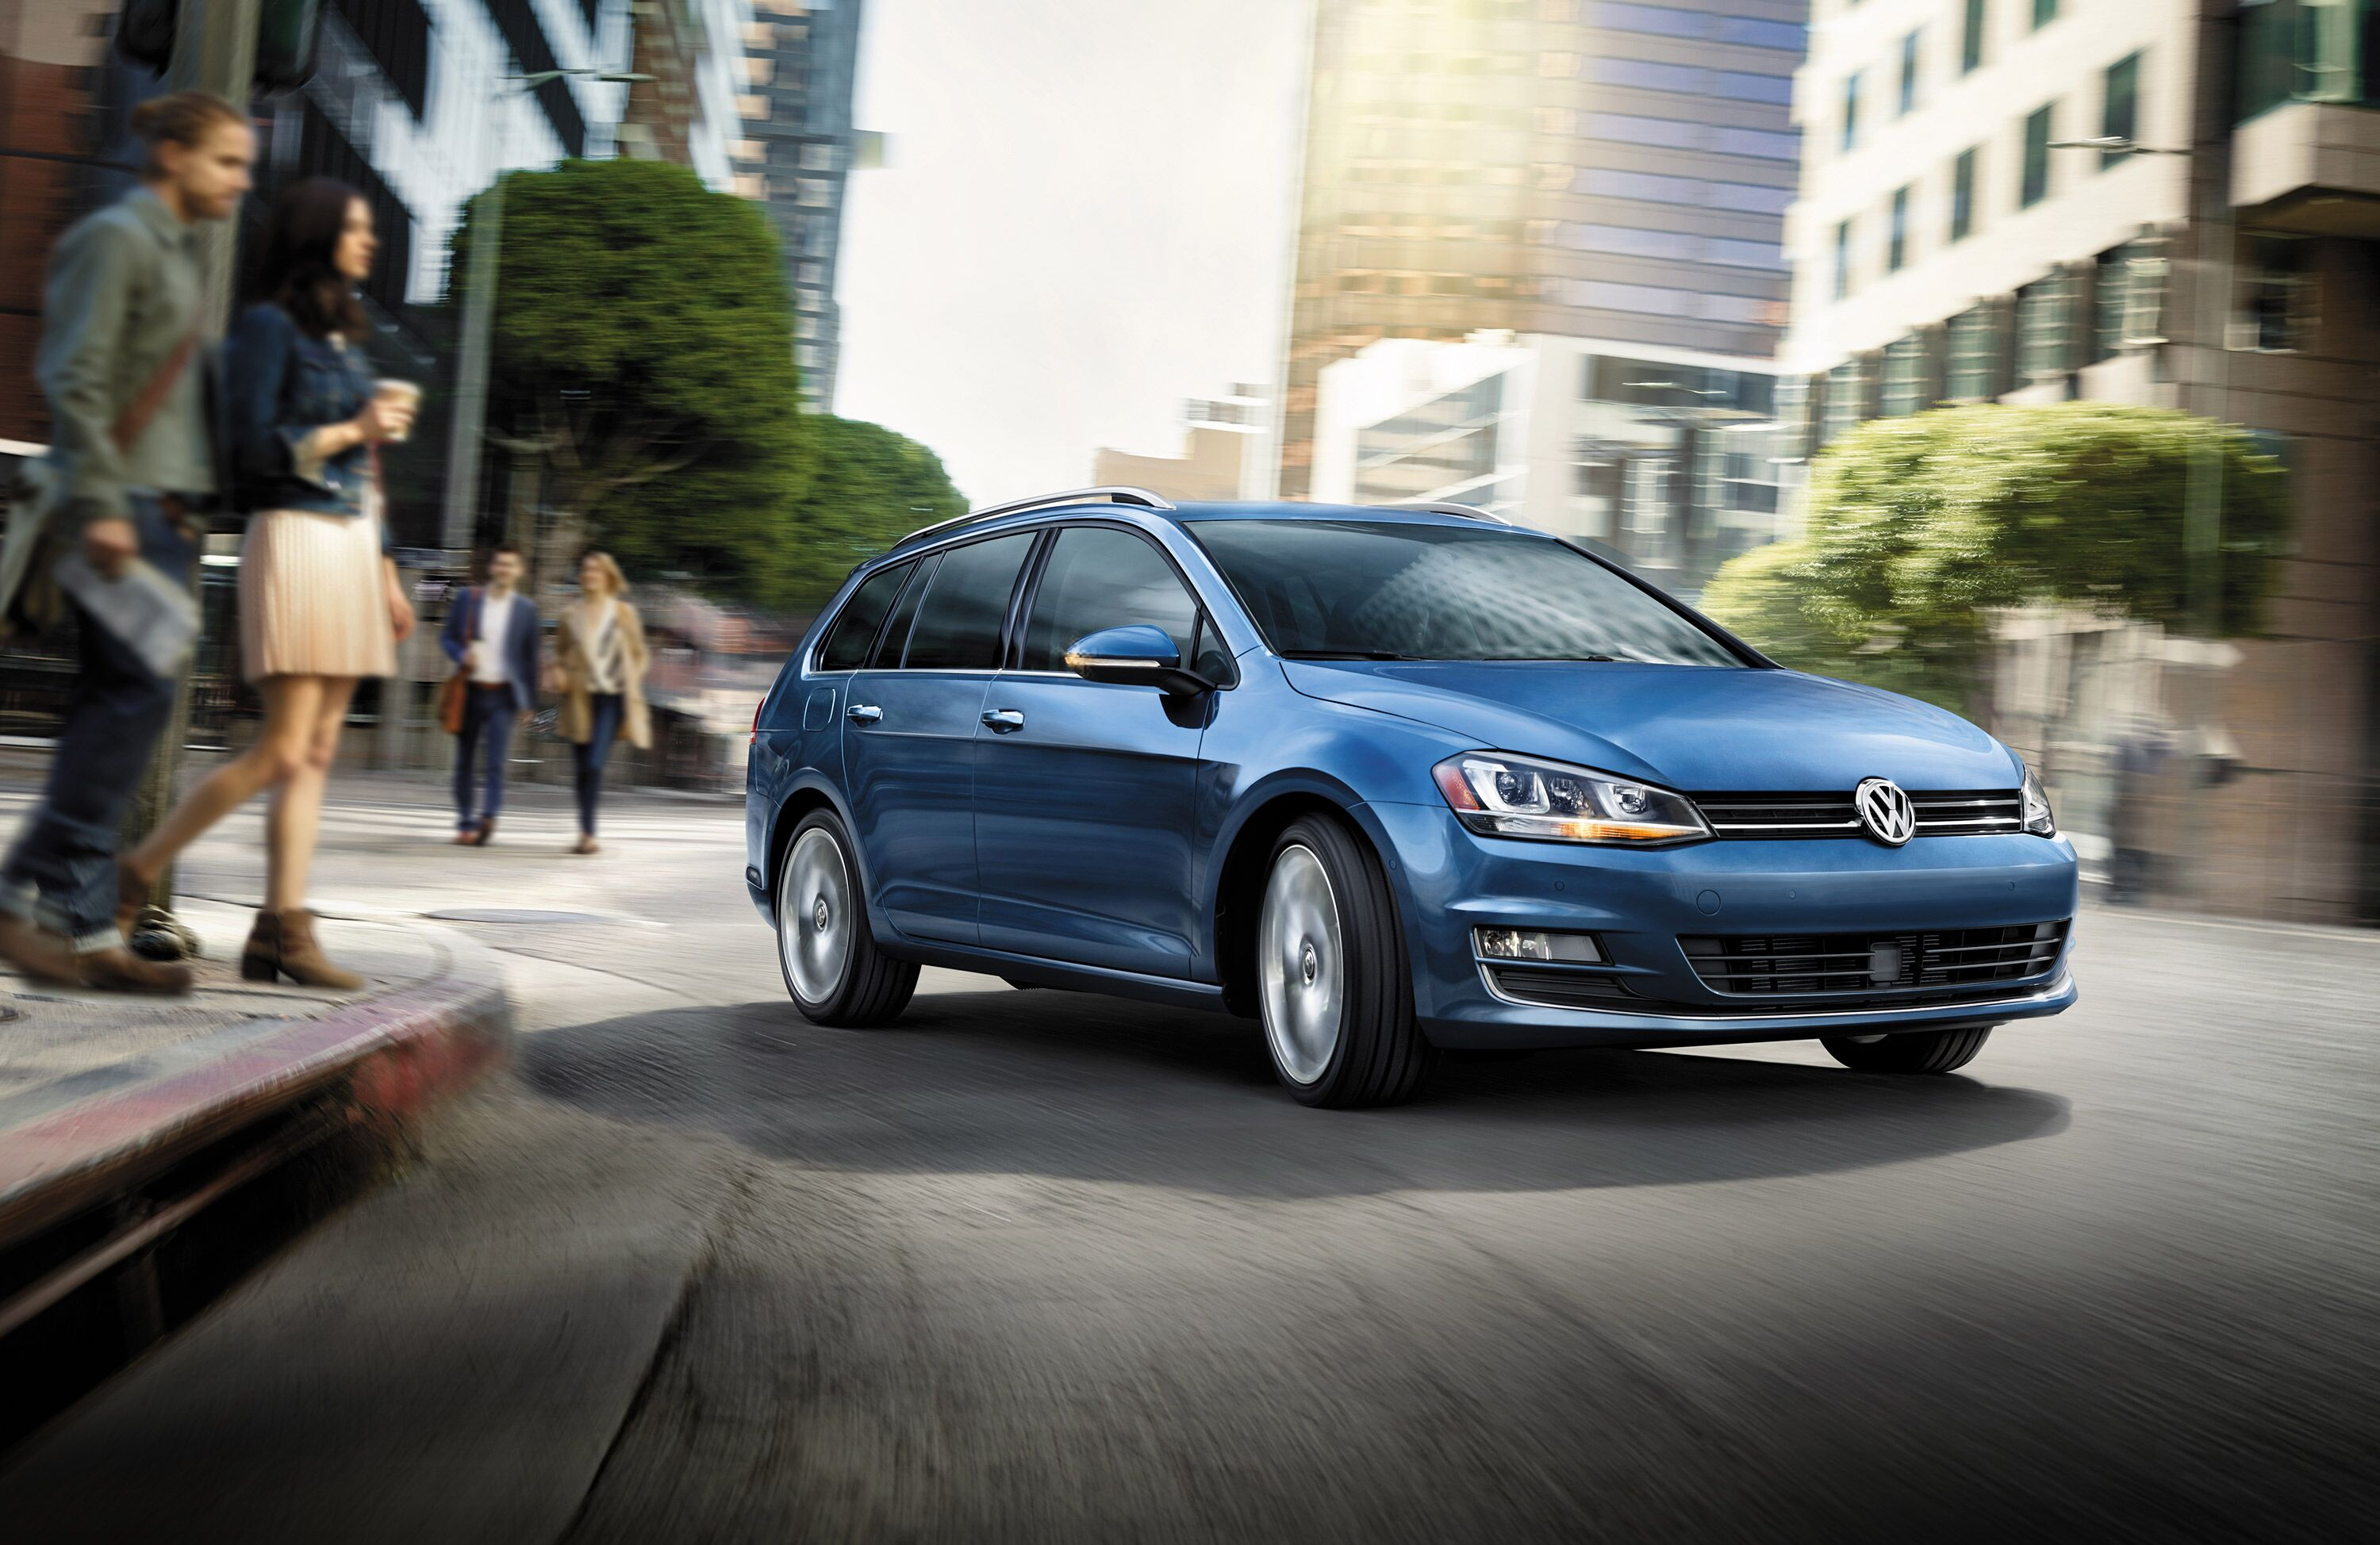 2016 Volkswagen Golf SportWagen from Volkswagen of Van Nuys